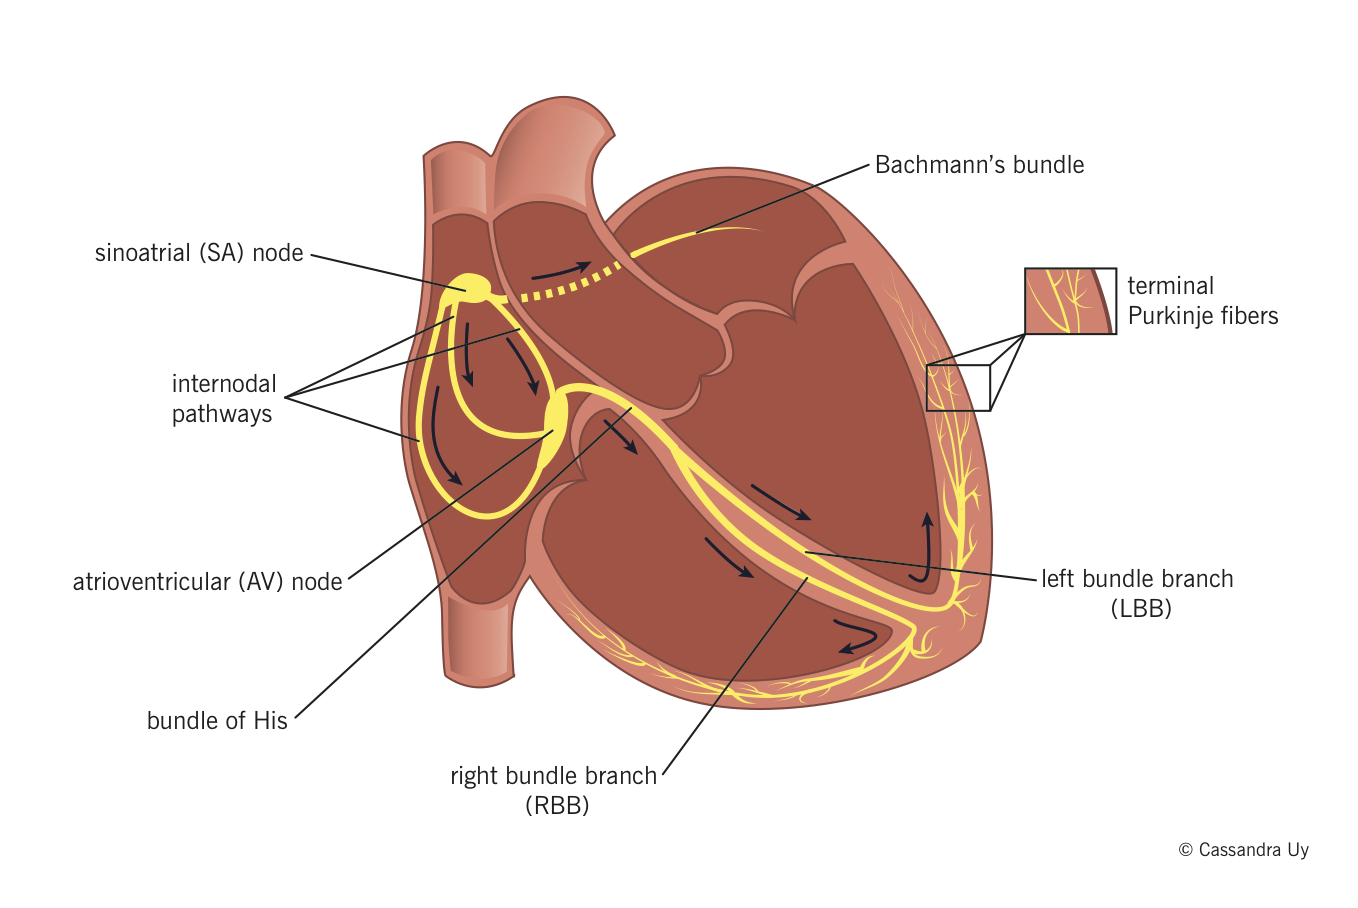 Cardiac conducting system <BR> - Sinoatrial (SA) node normally ...